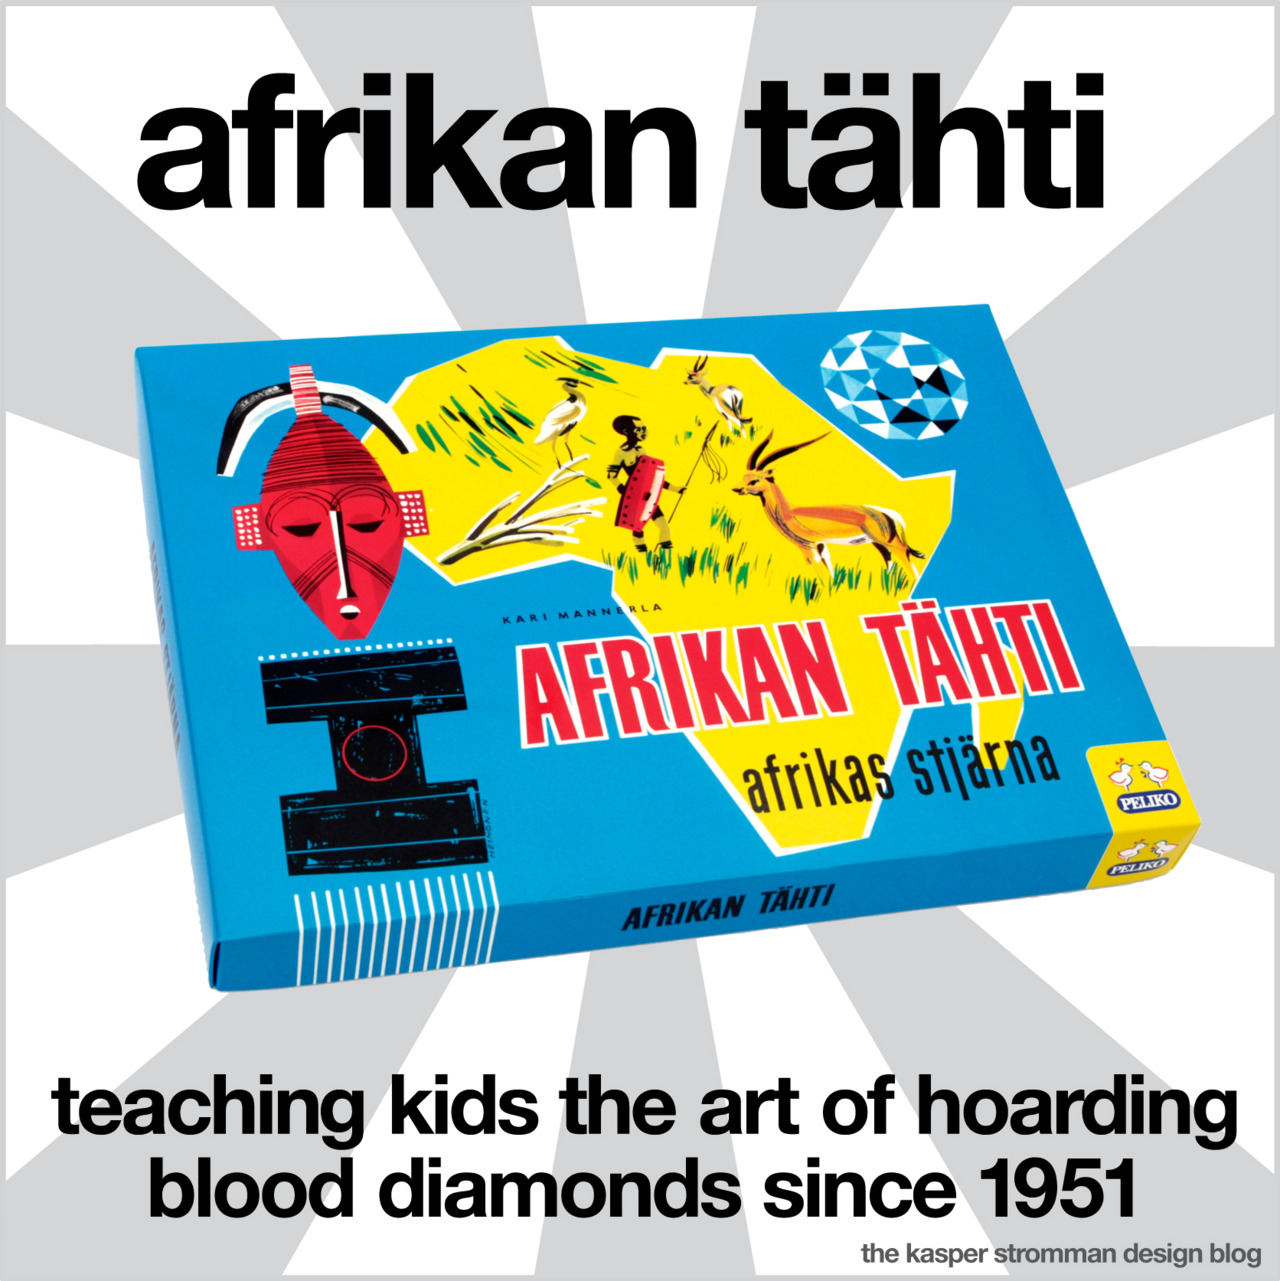 Afrikan thti: teaching kids the art of hoarding blood diamonds since 1951 by Kasper Stromman on tumblr